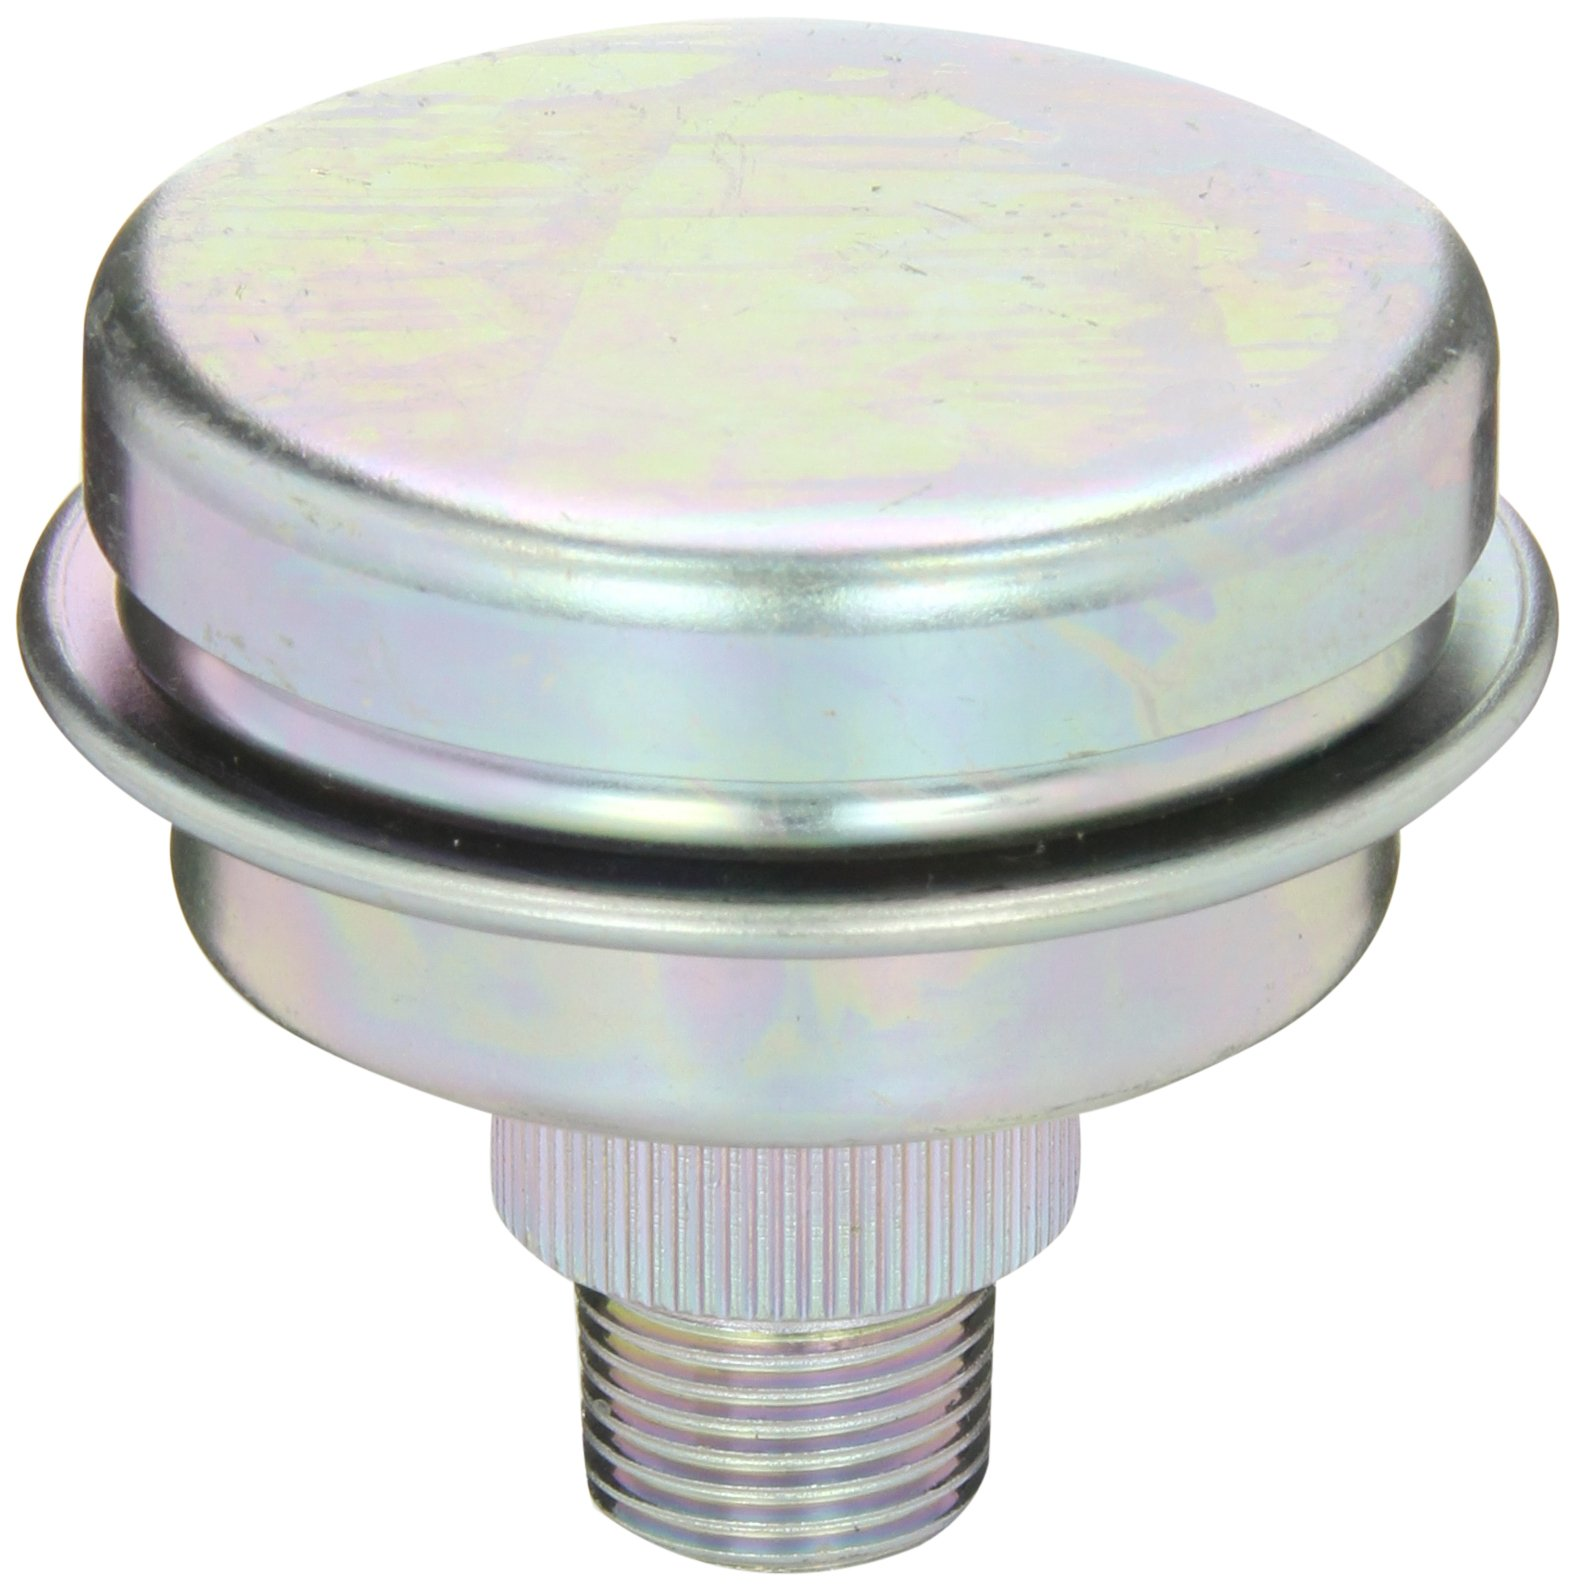 Gits 1010-050000 Expansion Chamber, 1/2''-14 Male NPT, 5.0 cubic inches